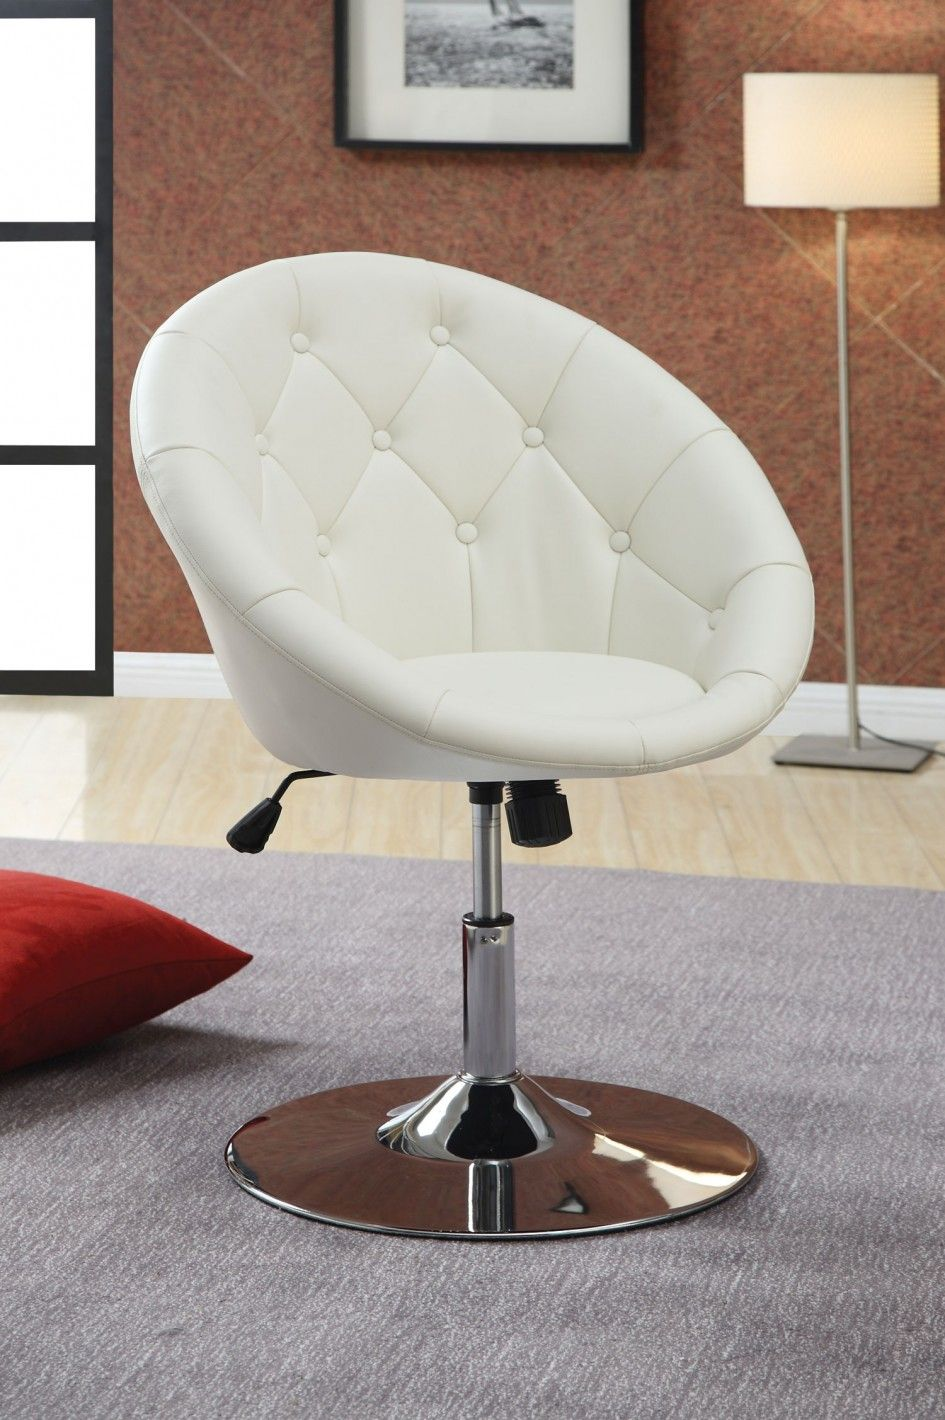 Modern Uphosltered White Leather Swivel Desk Chair With Tufted Back And Chrome Finish Round Metal Base